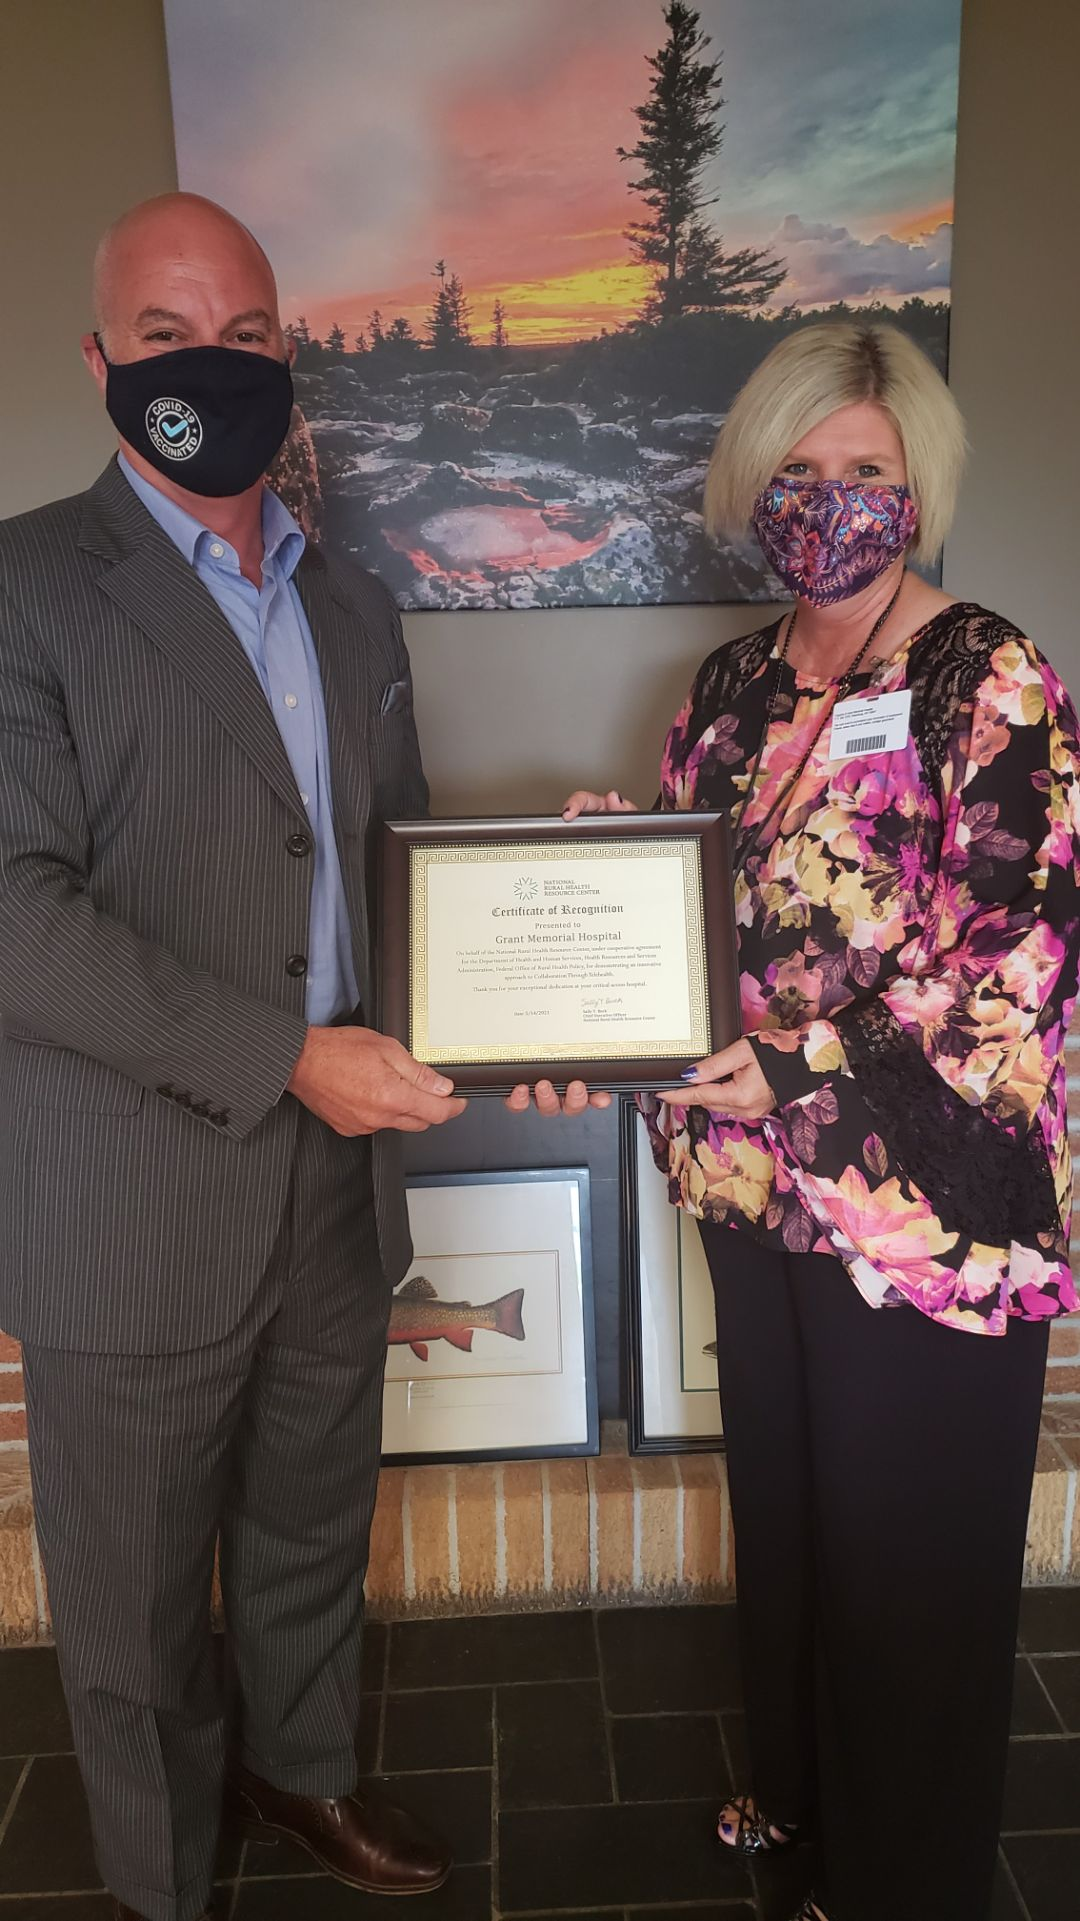 Bob Milvet, CEO, Grant Memorial Hospital accepting recognition certificate from Lisa Lewis, Hospital Programs Manager, West Virginia State Office of Rural Health